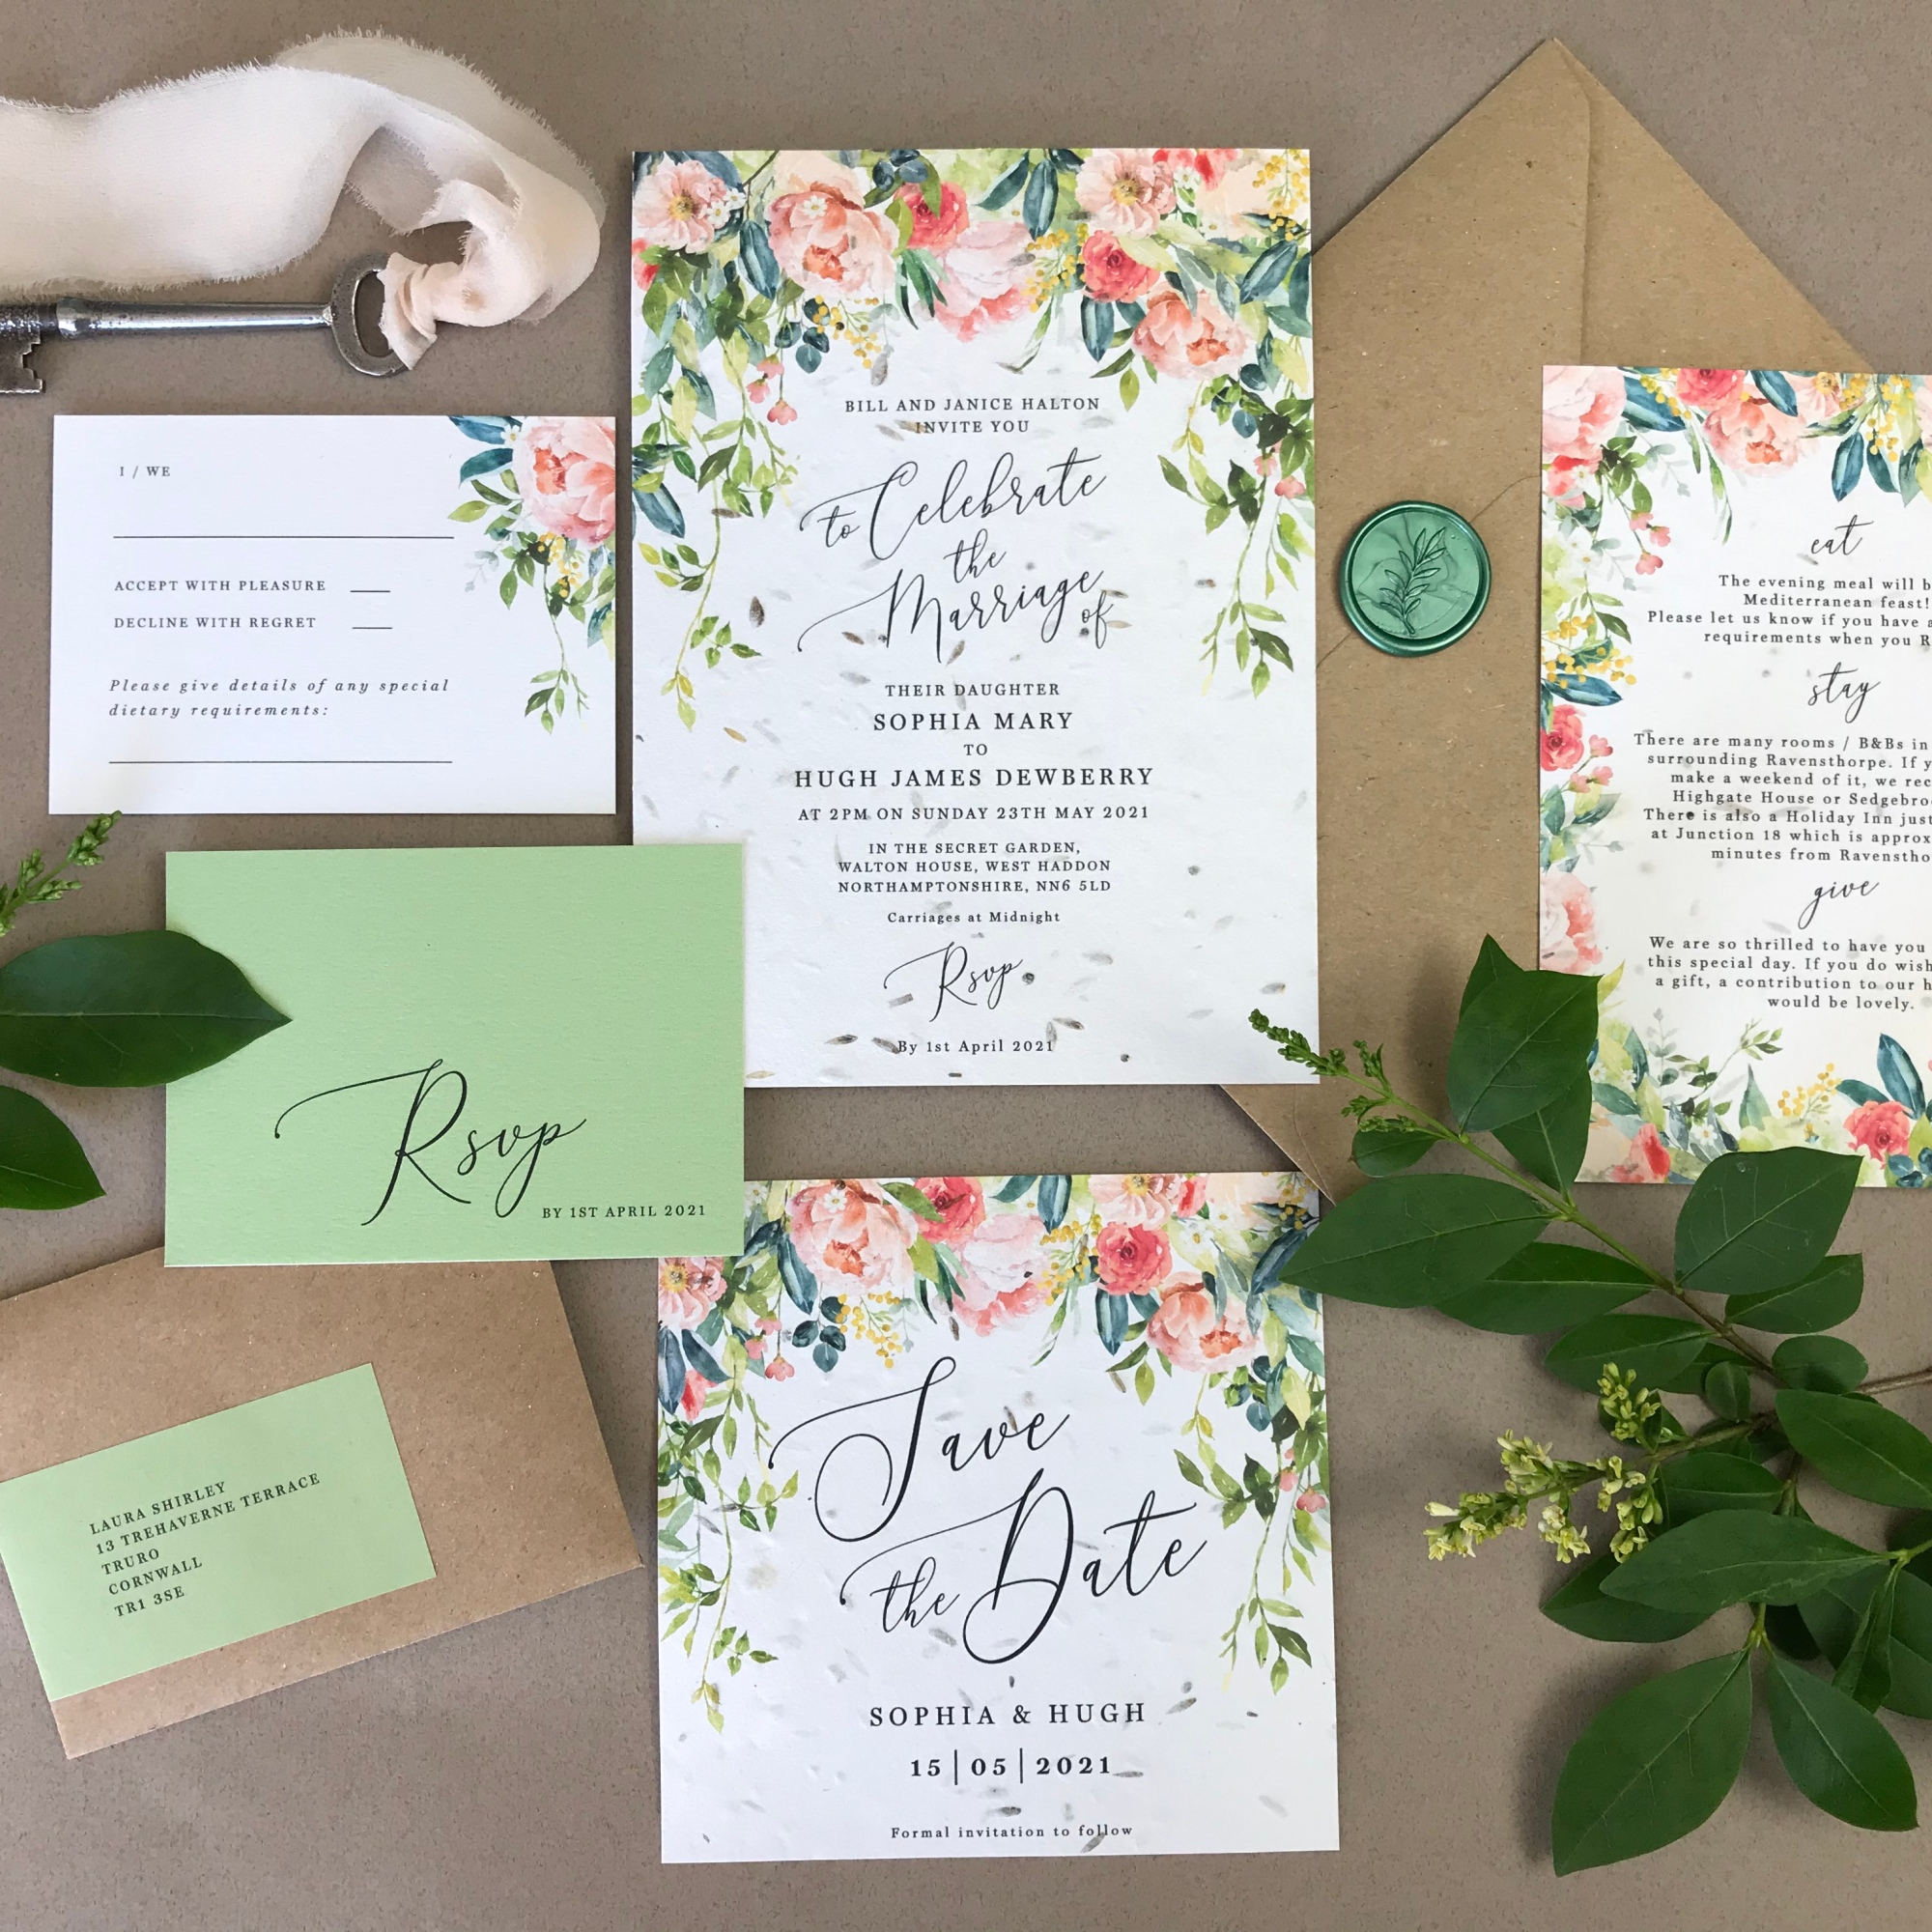 peonies, roses, peony, rose, wild, overgrown, secret, garden, blush, boho, simple, foliage, green, pink, vines, vine, wedding, invitation, invites, invitations, eco, recycled, Cornwall, Cornish, stationery, Laura Likes